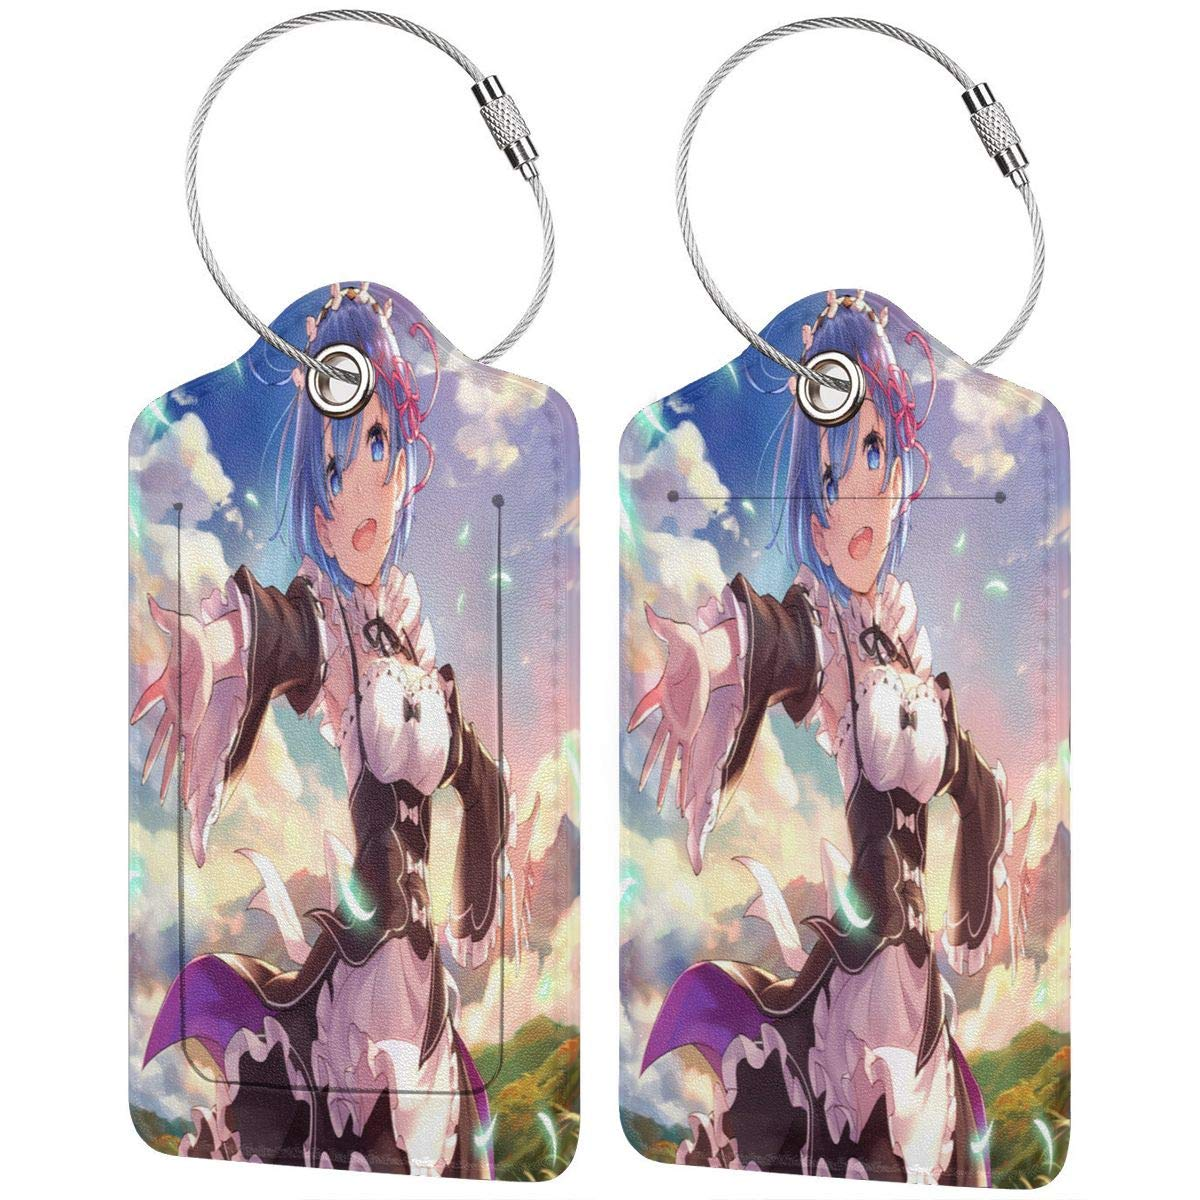 Re Zero-Rem Anime Cartoon Printed?Leather Luggage Tag /& Bag Tag With Privacy Cover 4 Kinds Of Specifications